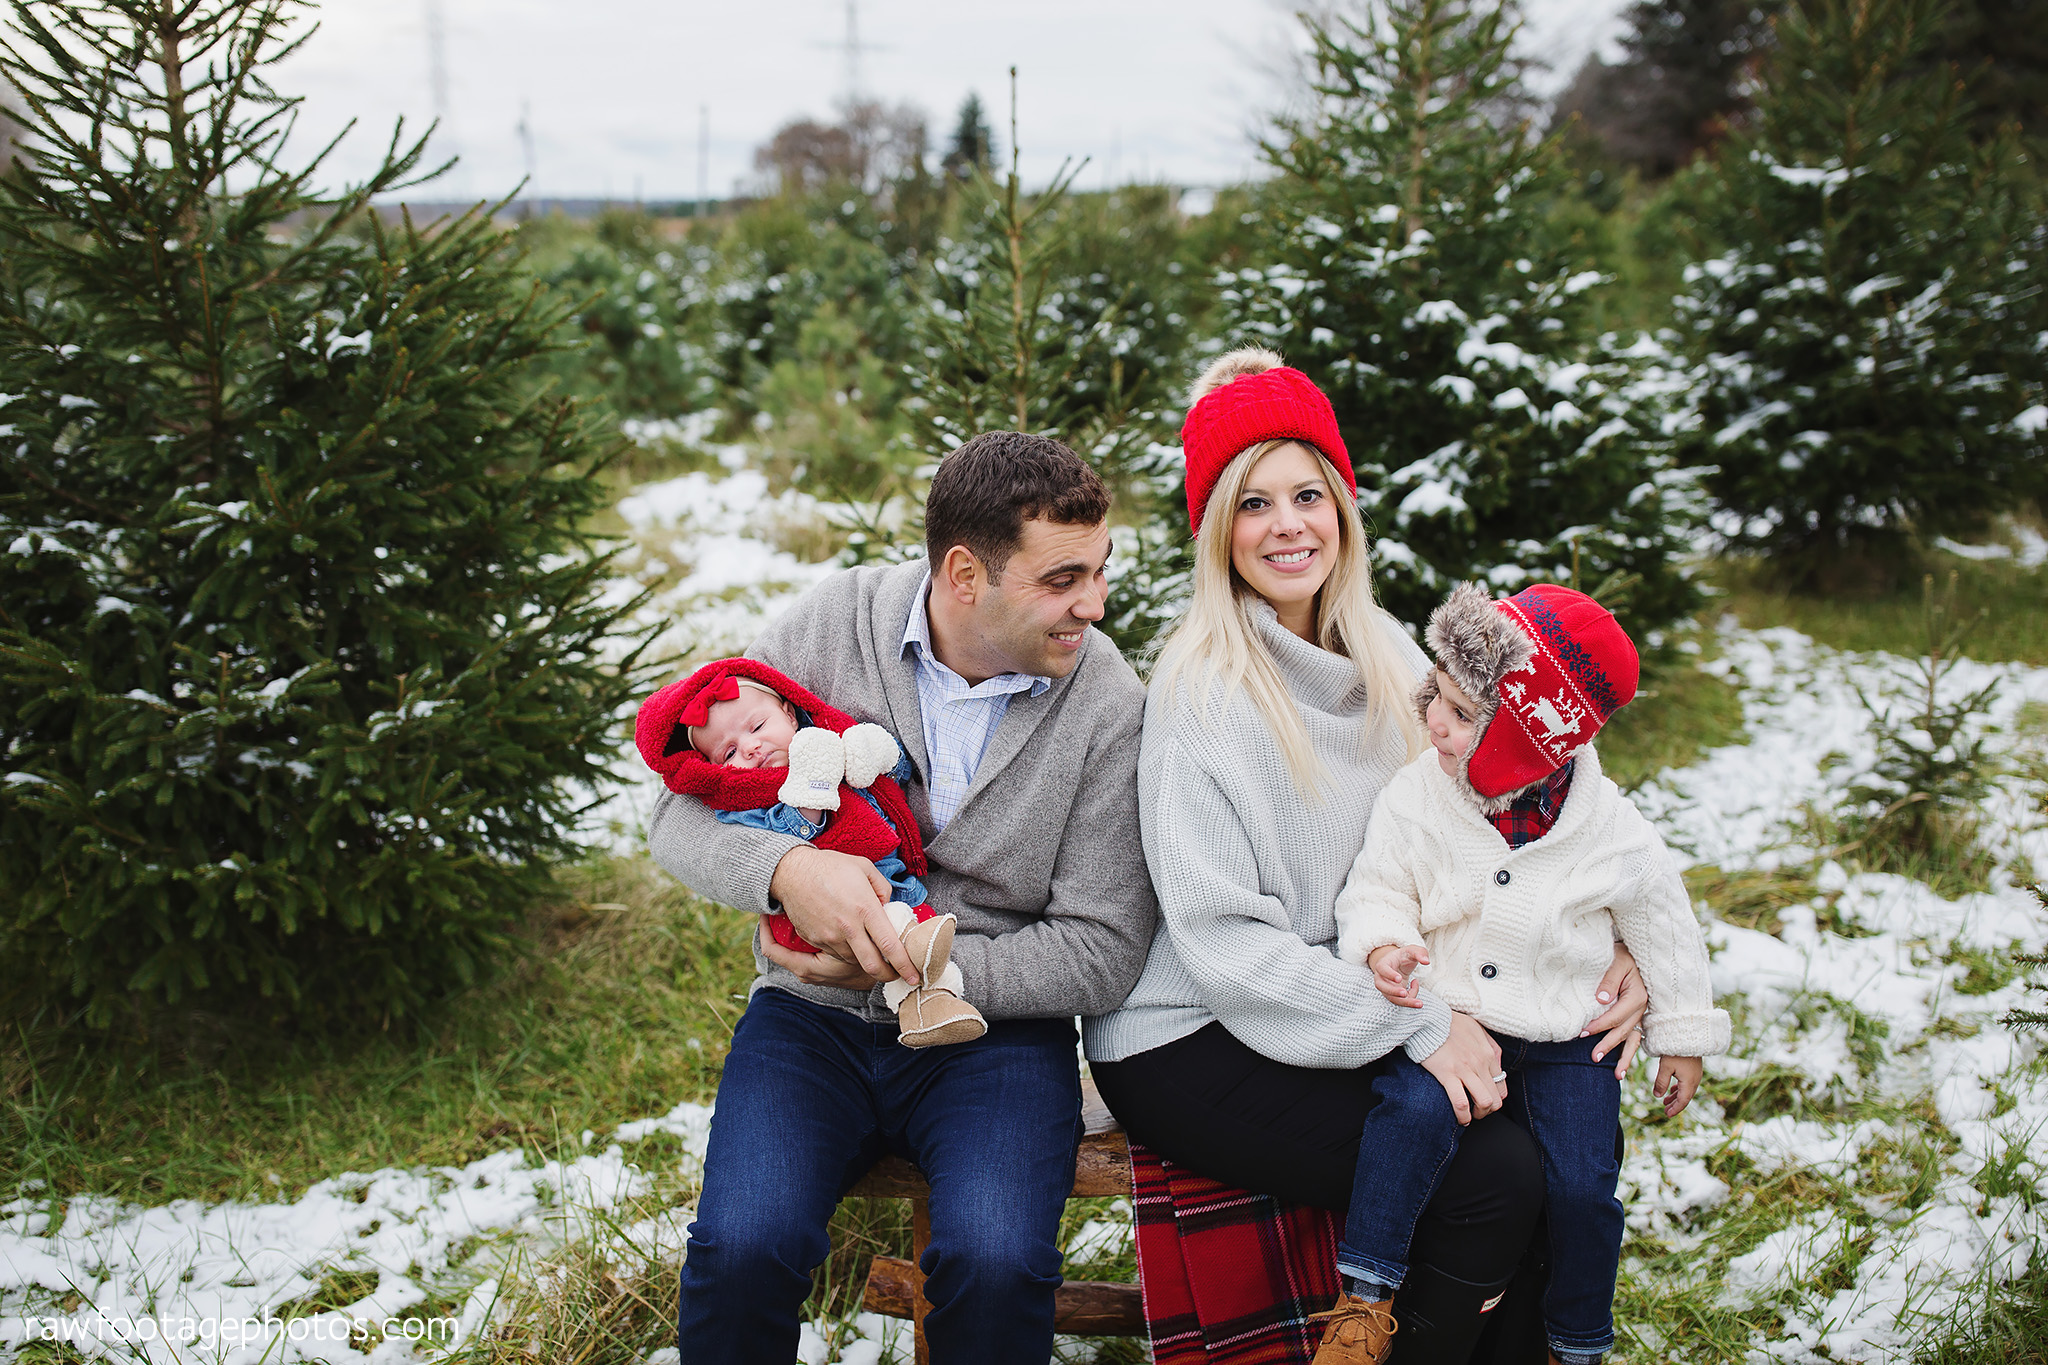 london_ontario_family_photographer-raw_footage_photography-tree_farm_minis-christmas_sessions-winter0010.jpg